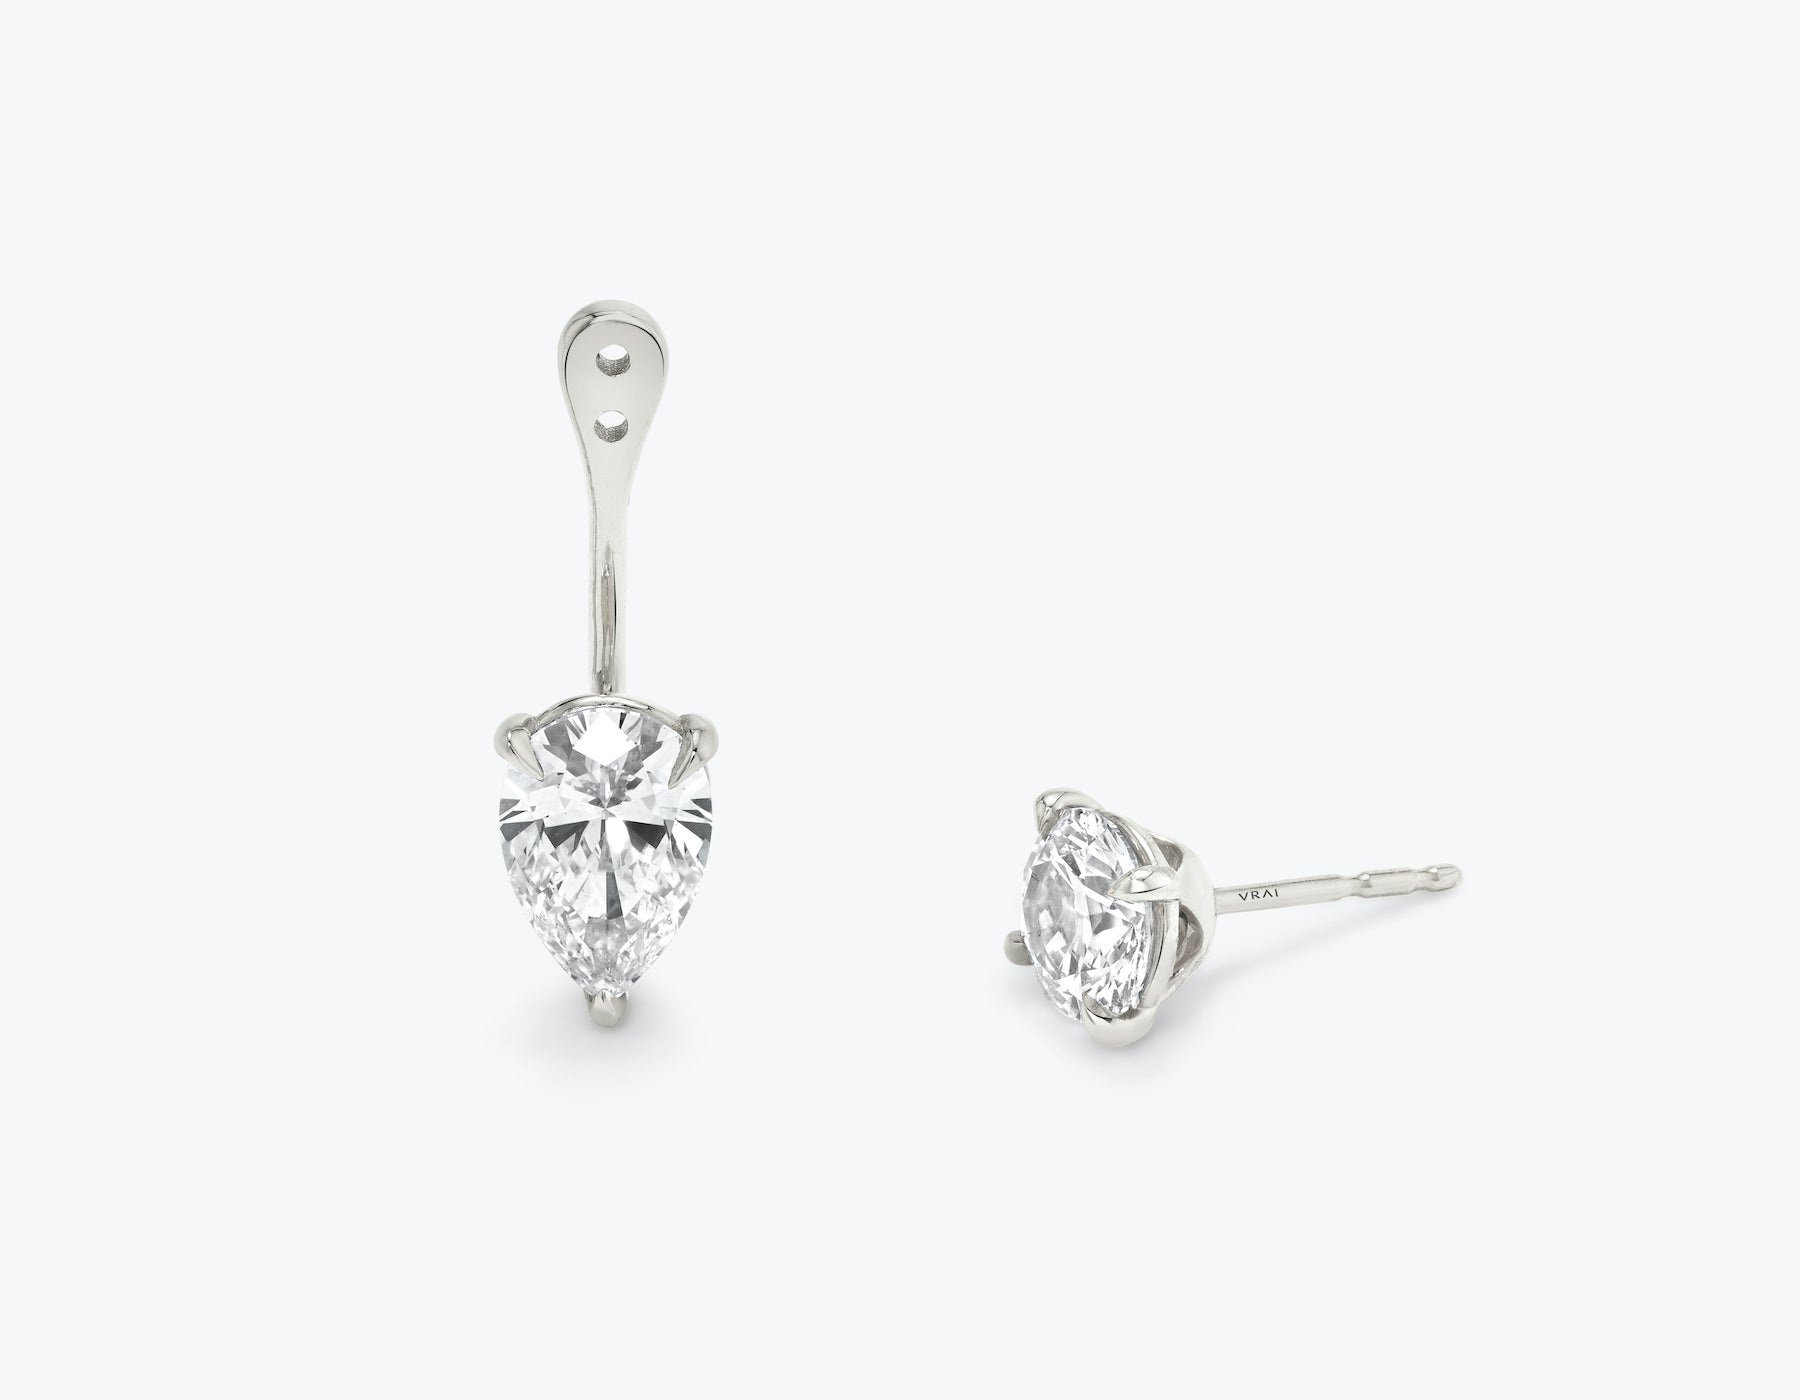 Vrai solitaire pear diamond drop ear jackets made in 14k solid gold with sustainably created diamonds with round solitaire diamond stud, 14K White Gold